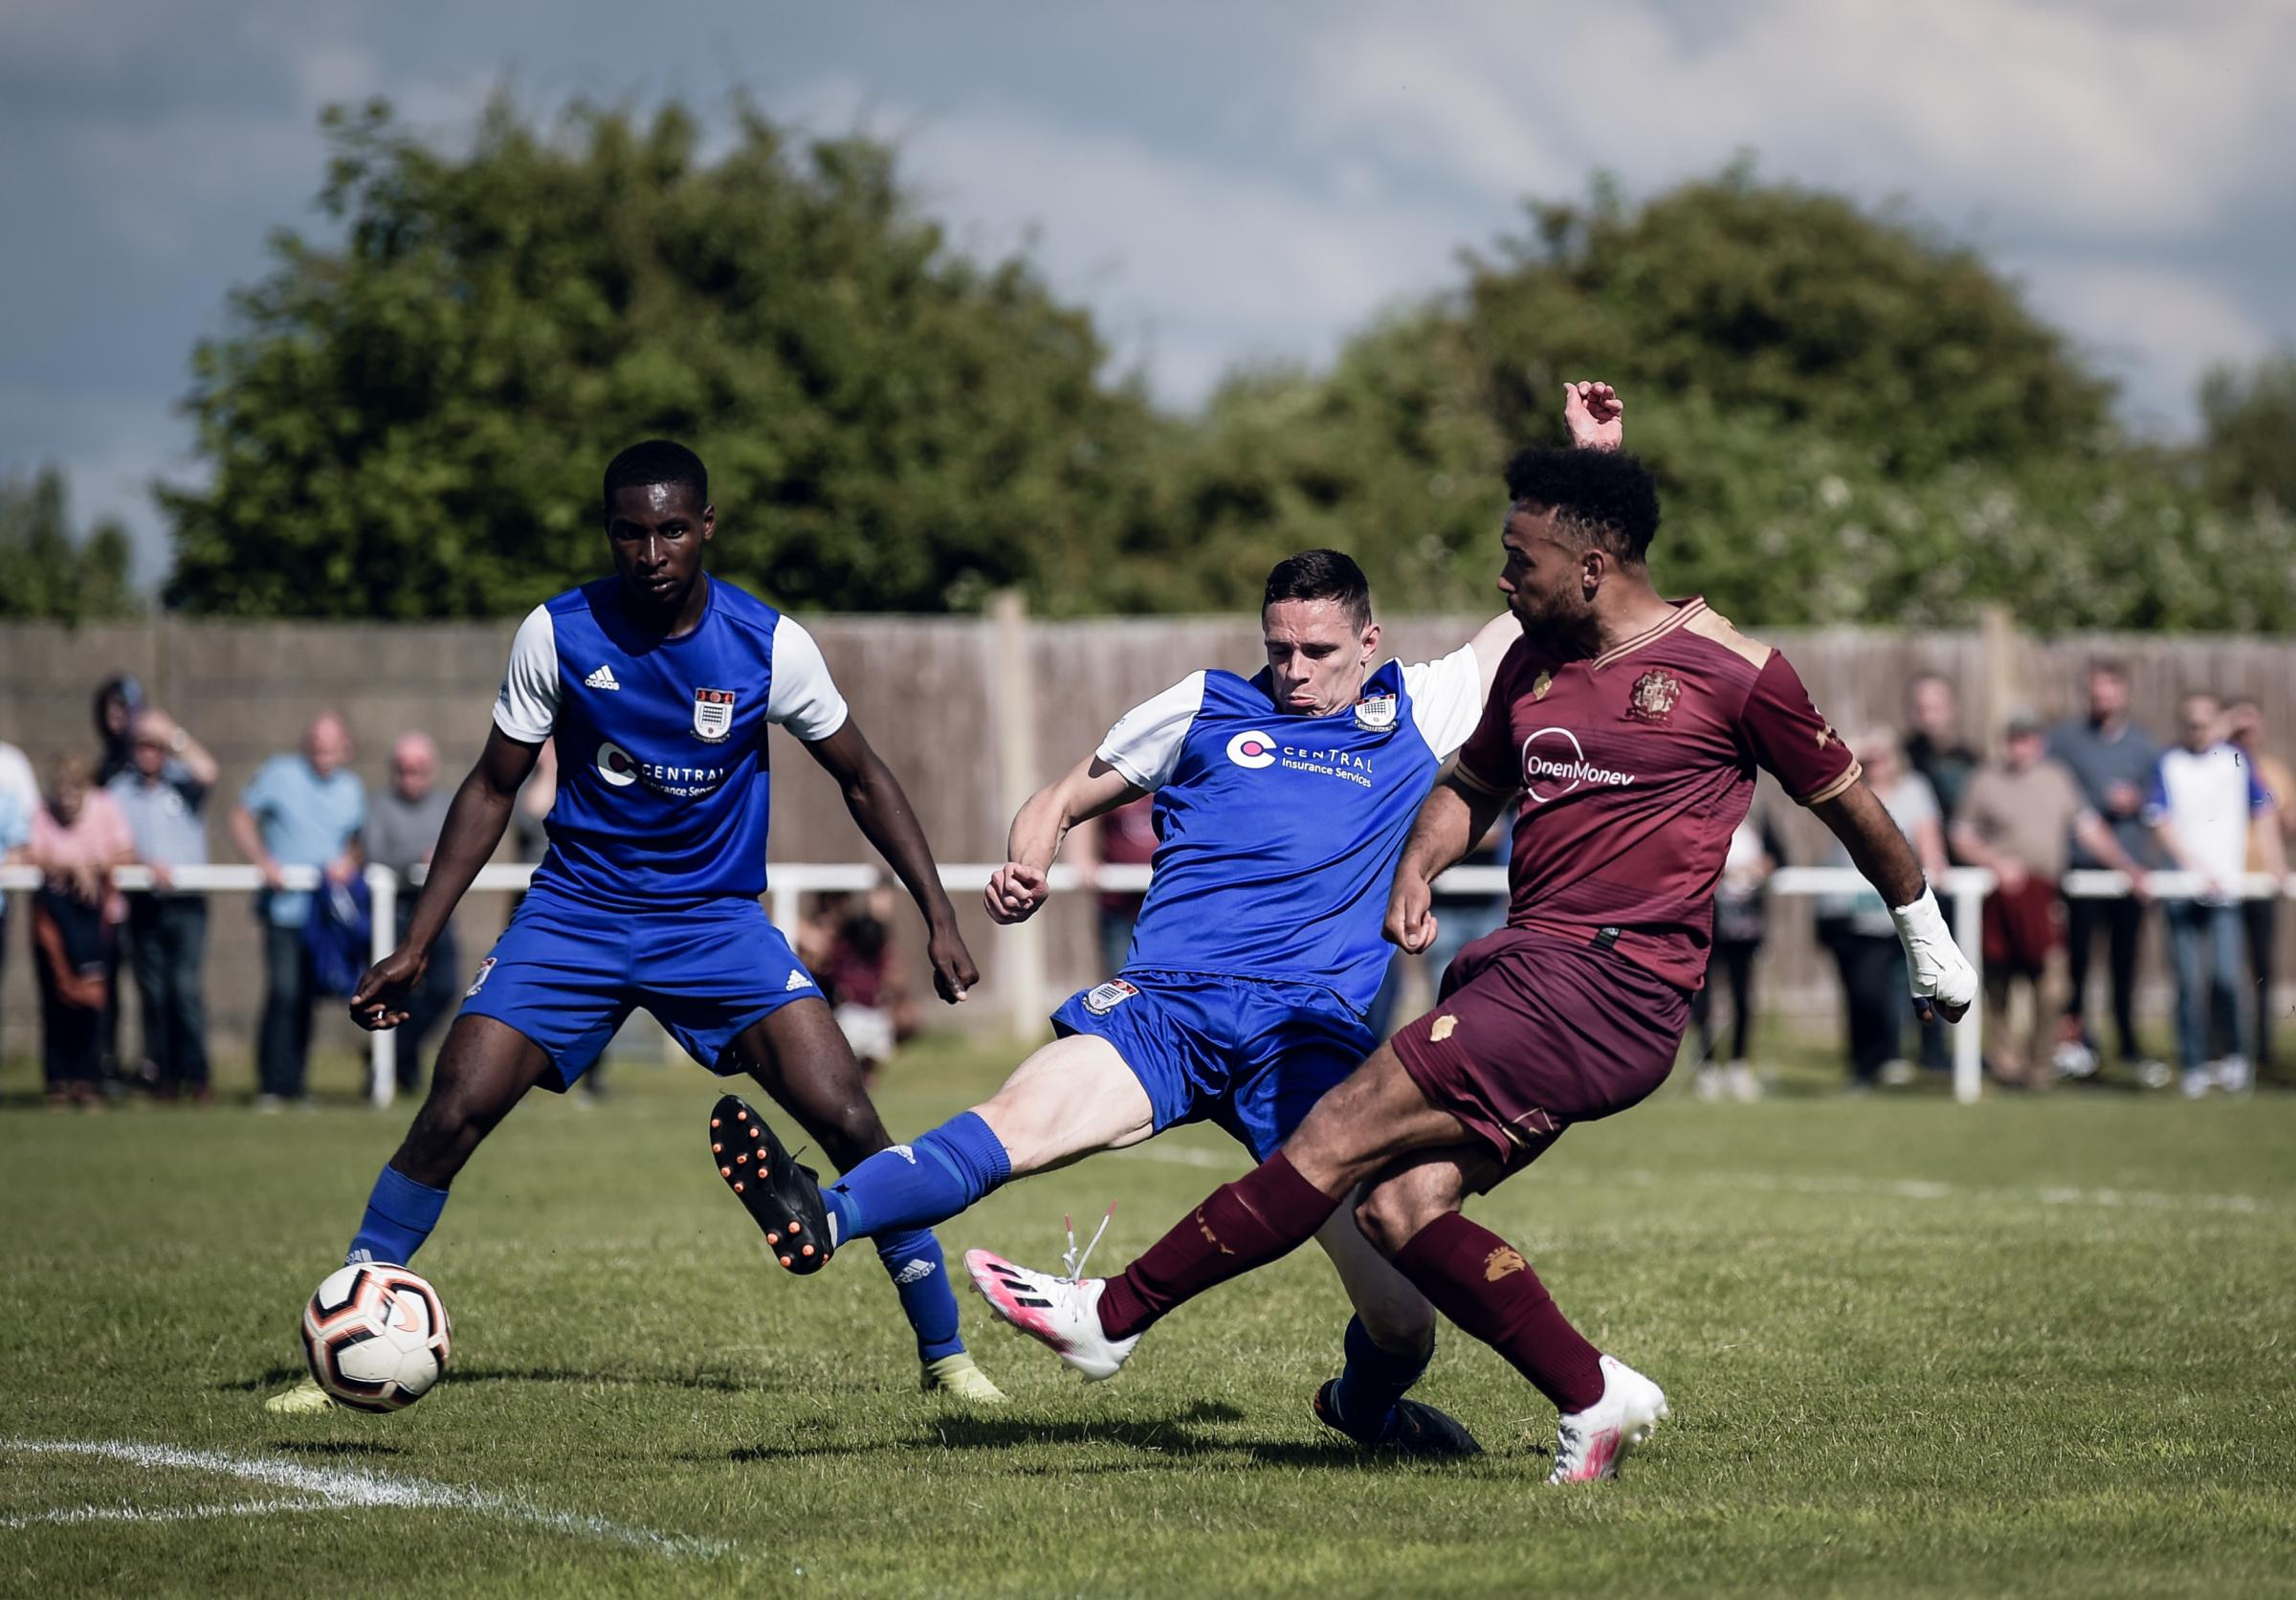 Bury AFC forward knows fight is on for a starting spot